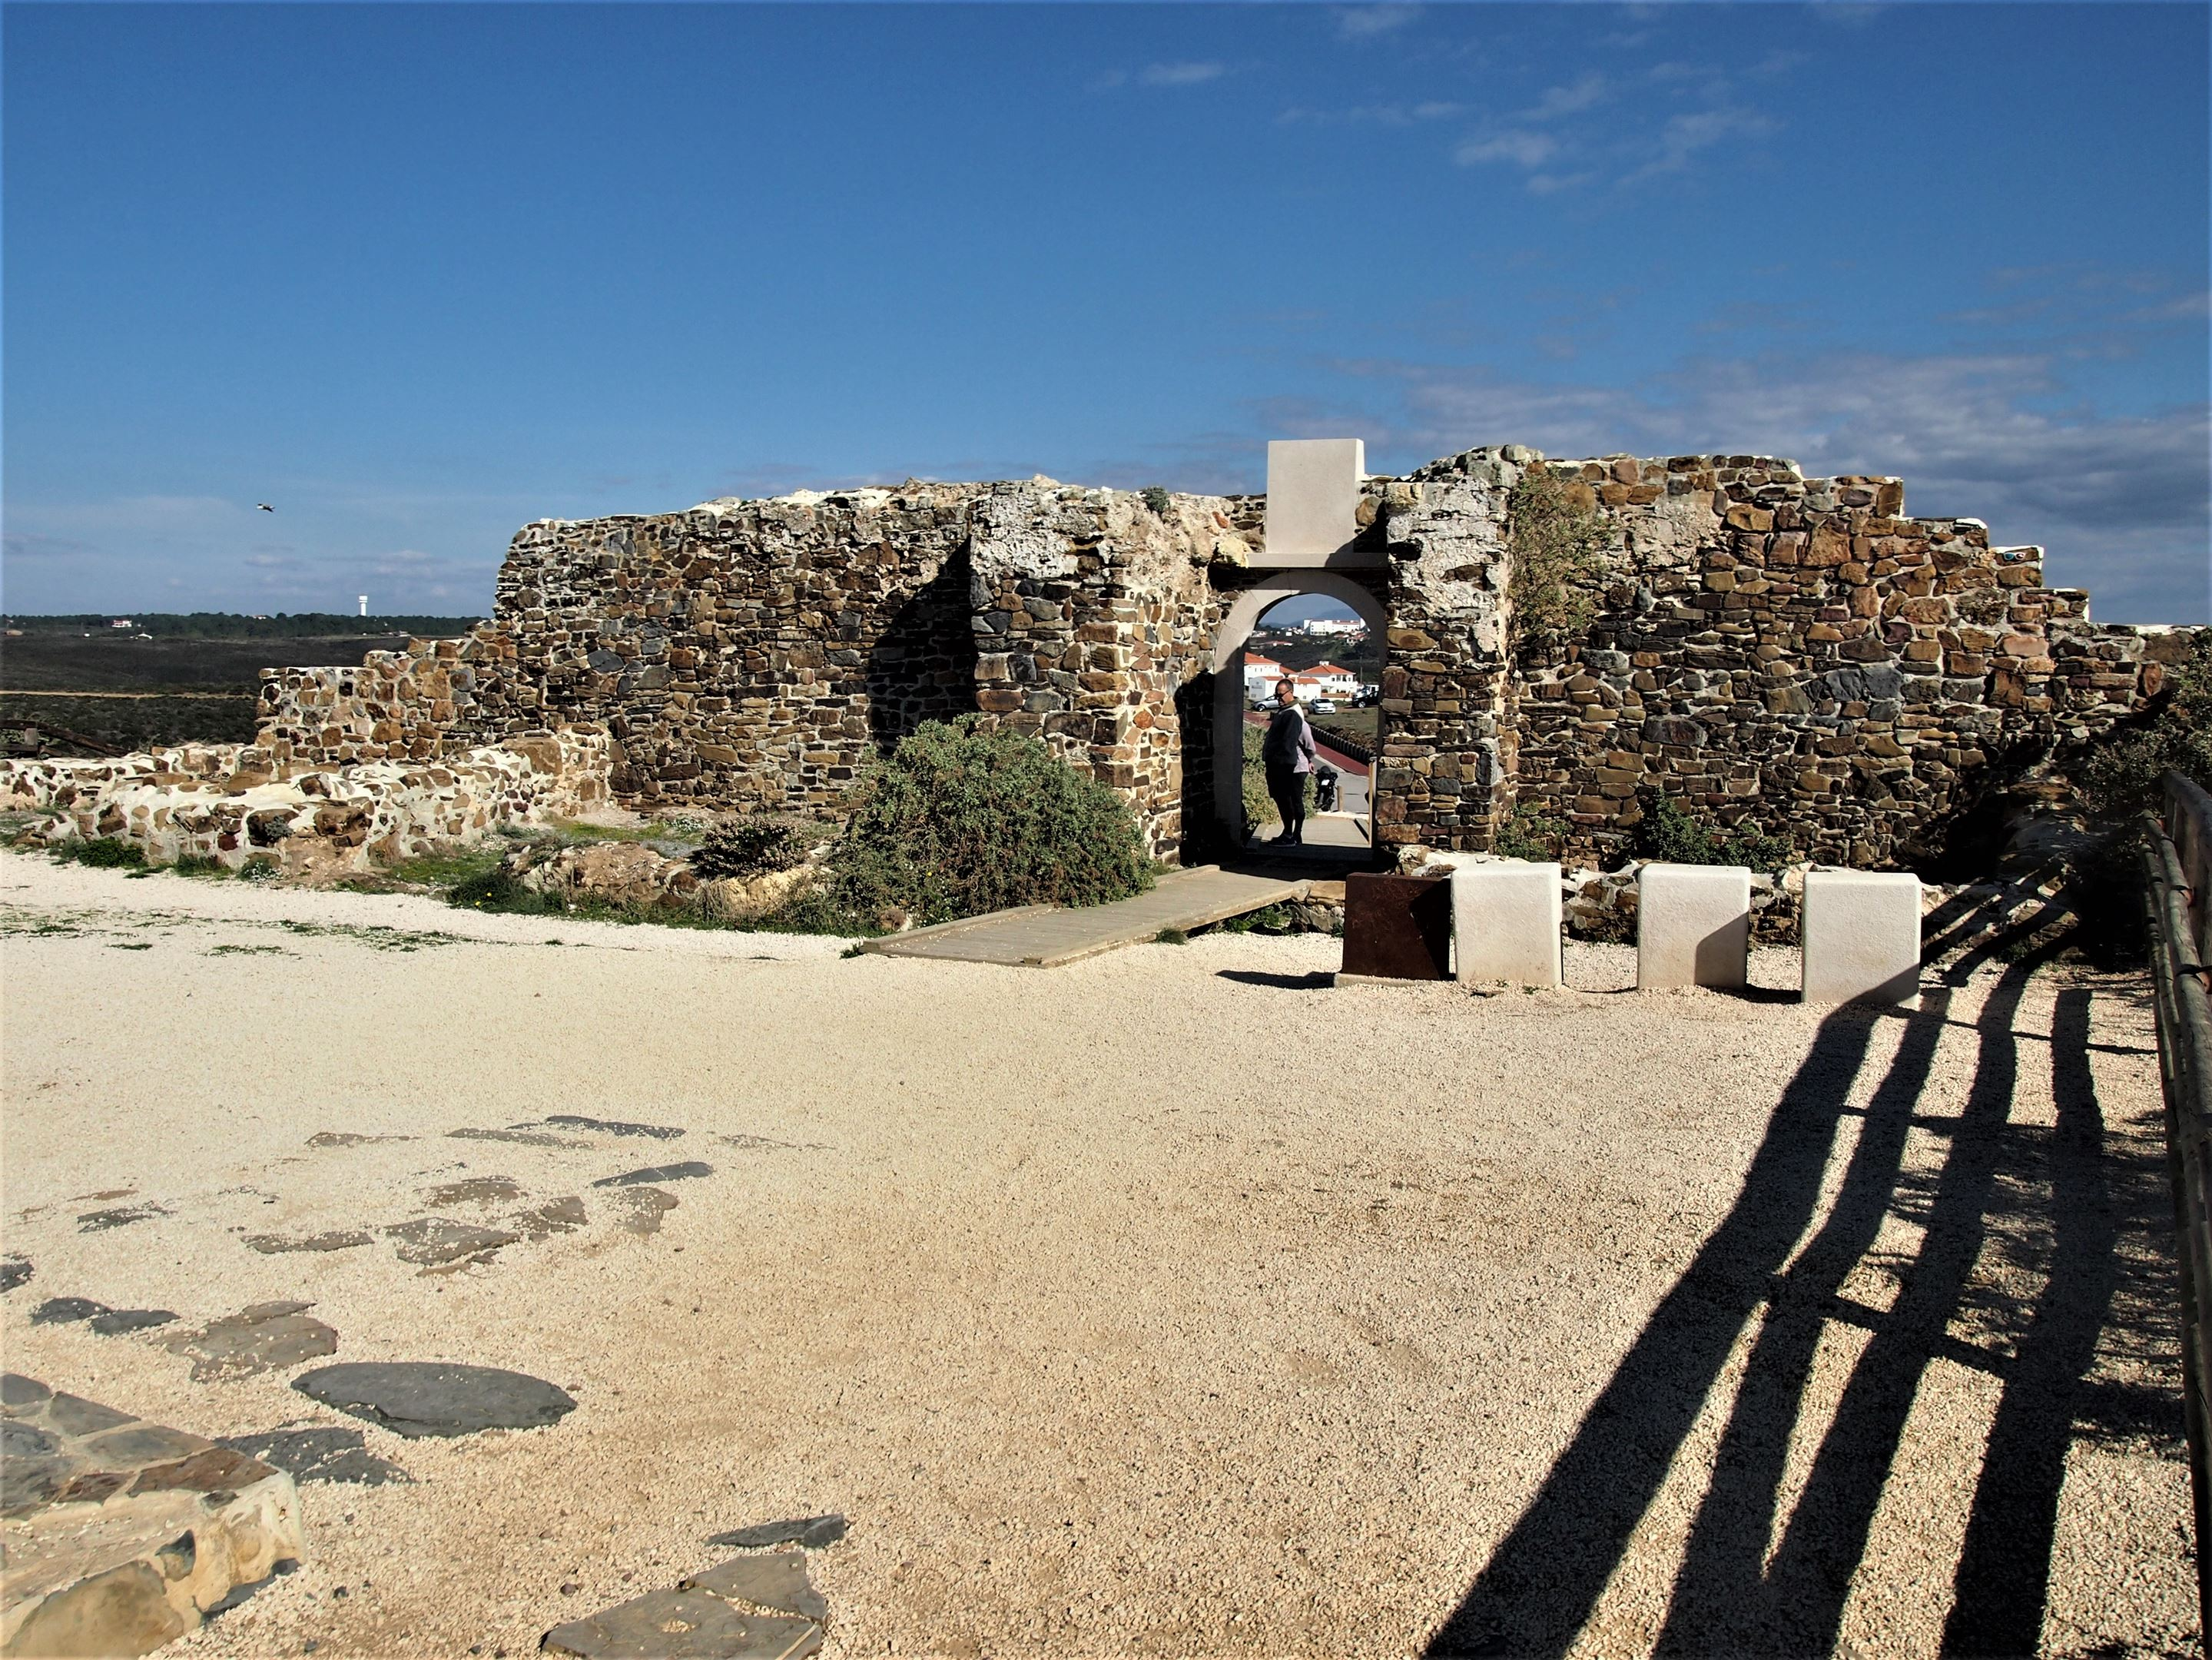 Built in the 17th Century, the remains of the Fortaleza da Arrifana, Aljezur